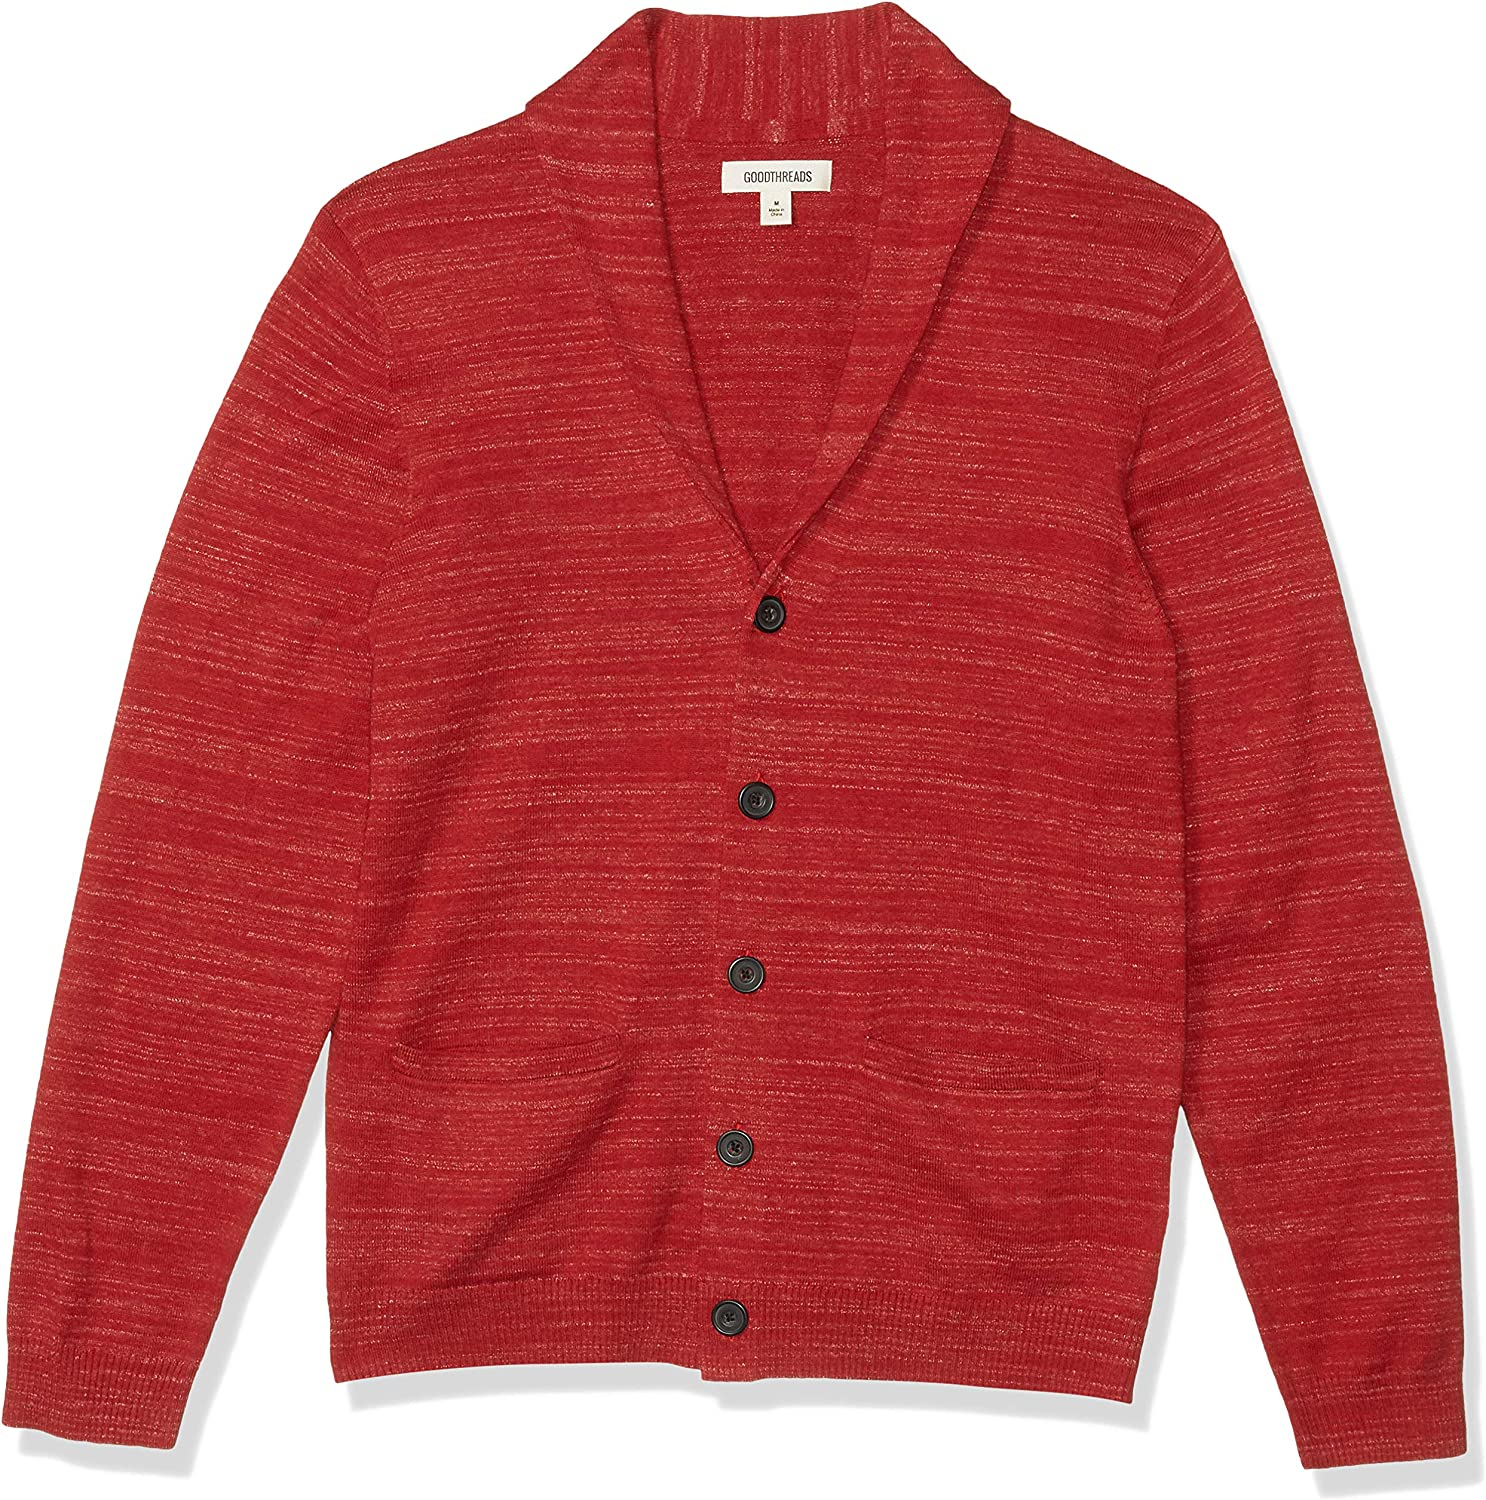 Goodthreads Men's Soft Cotton Cardigan Summer Sweater 67% OFF of fixed Store price